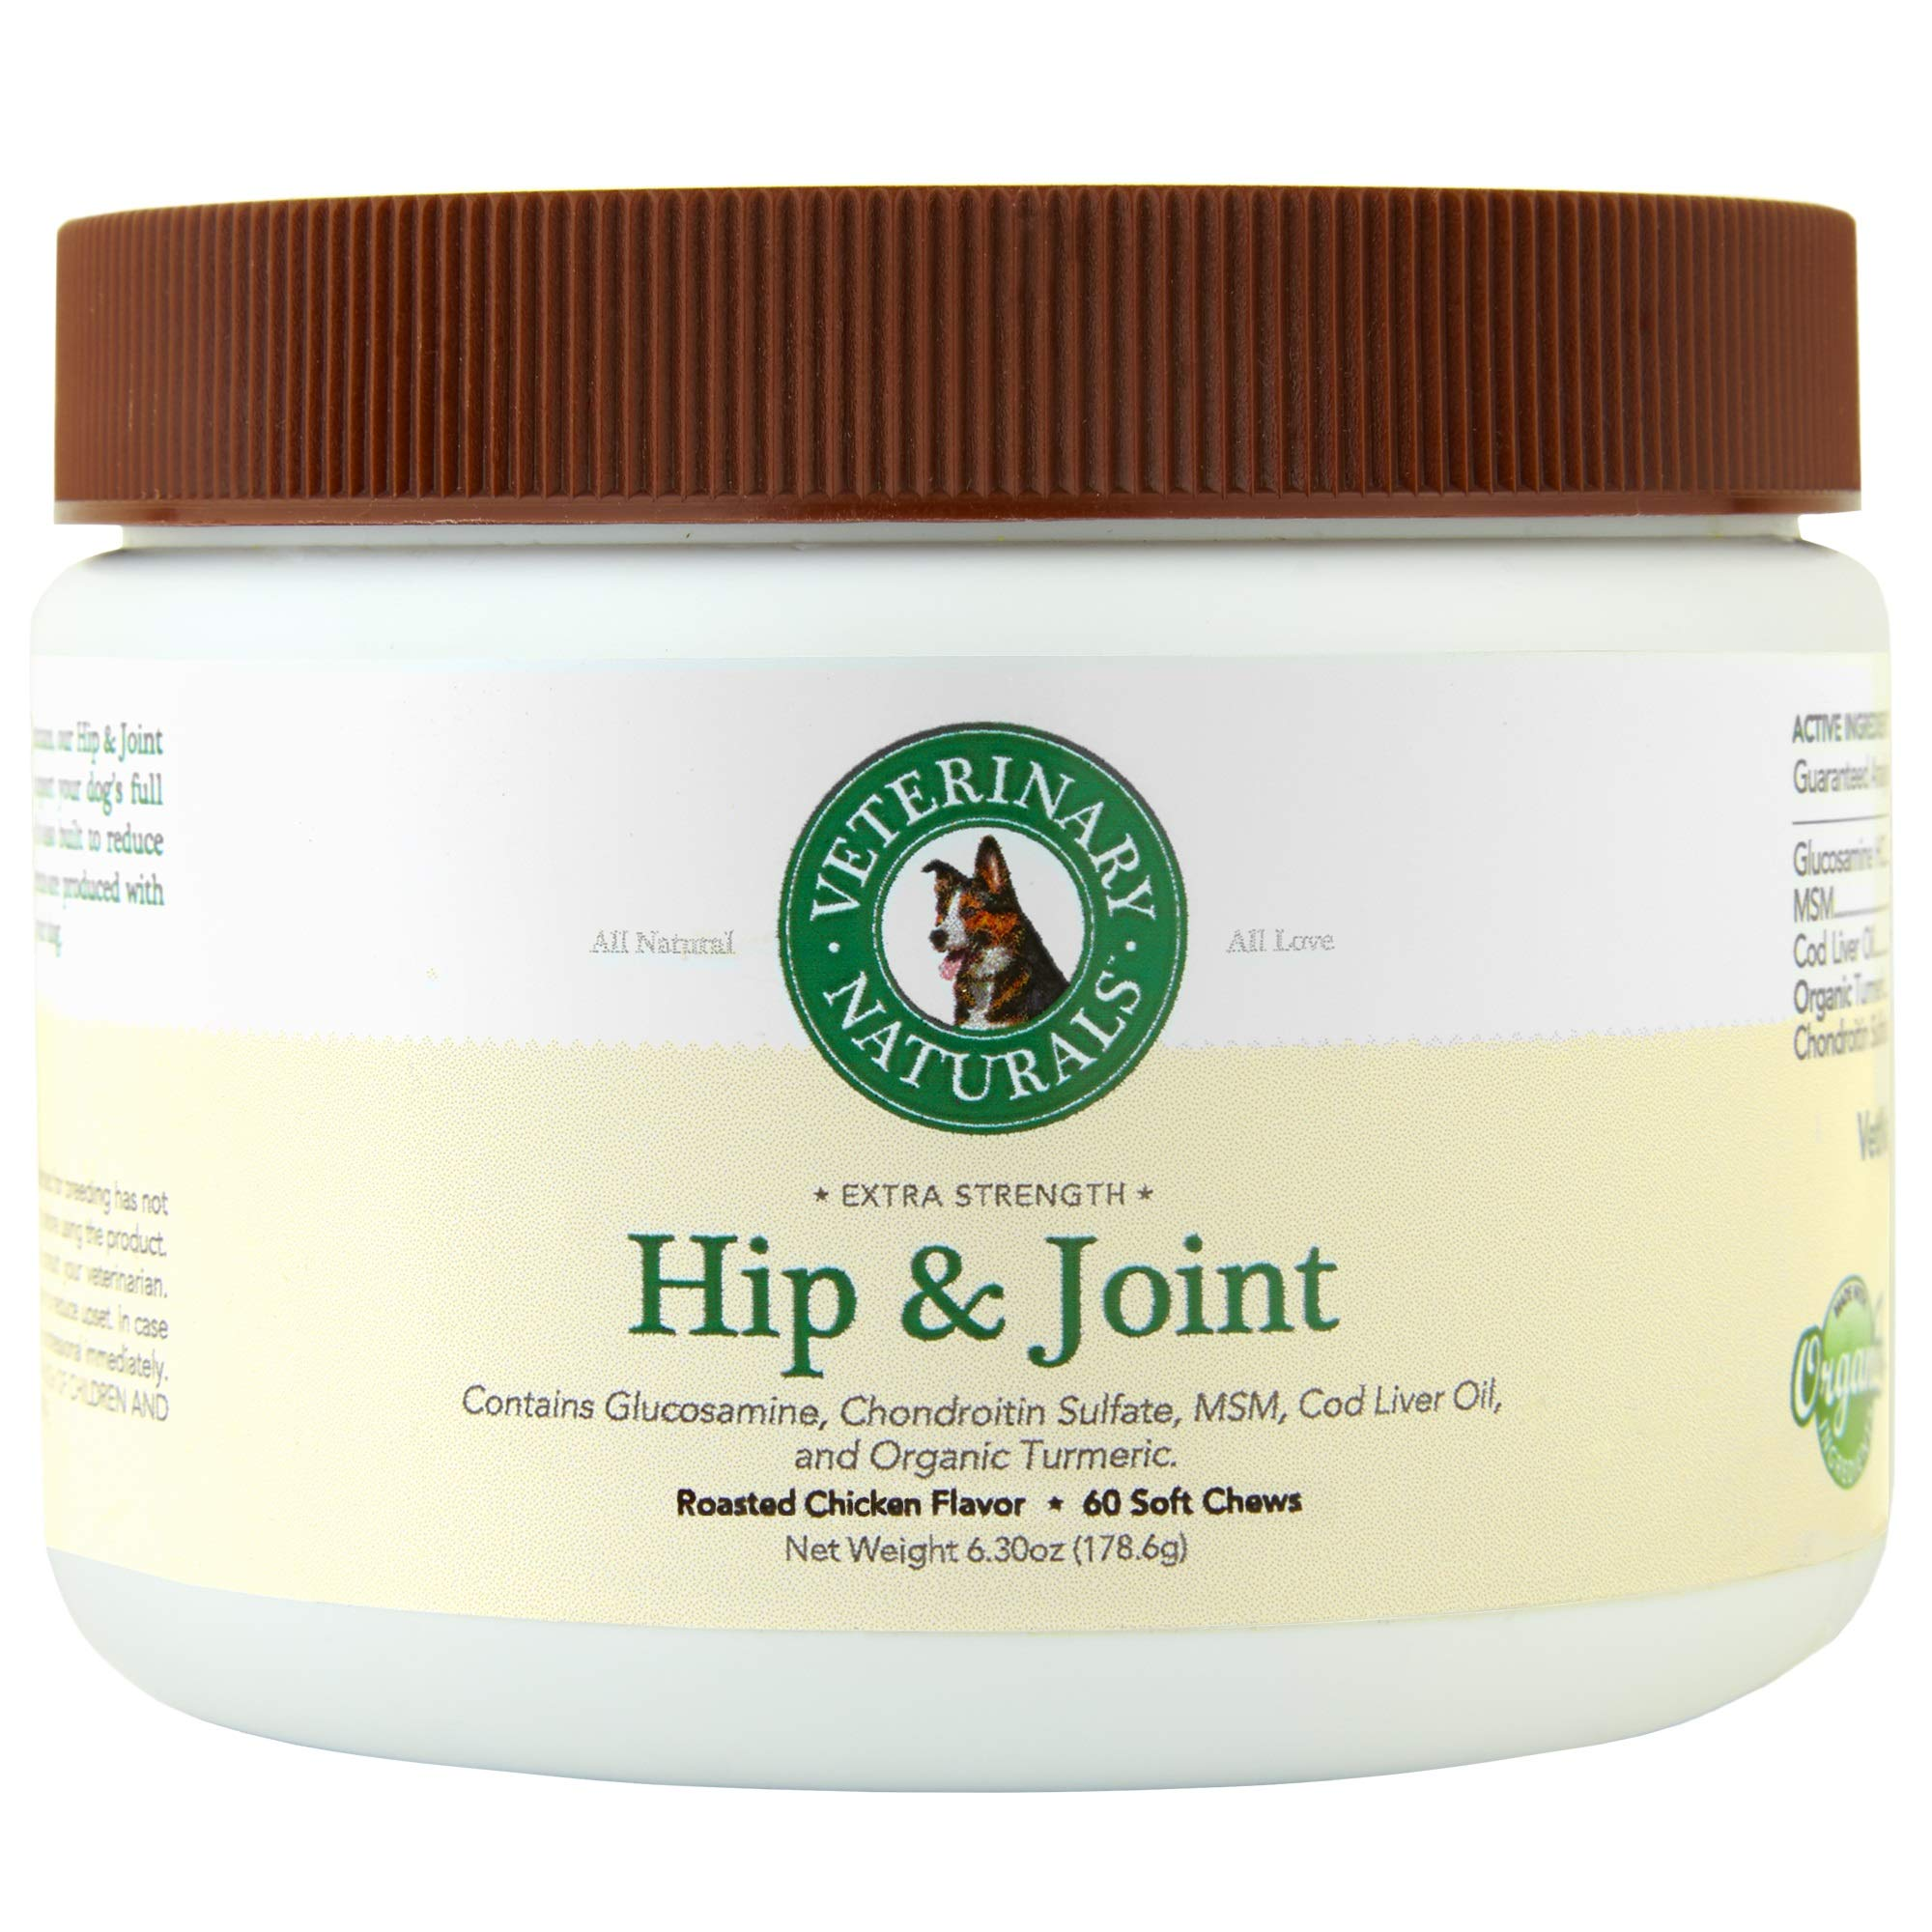 Veterinary Naturals Best Supplements for Dogs - Glucosamine, Chondroitin & MSM, Organic Turmeric & Fish Oil for Instant Pain Relief, Increased Mobility and Anti-Inflammatory (Chicken)